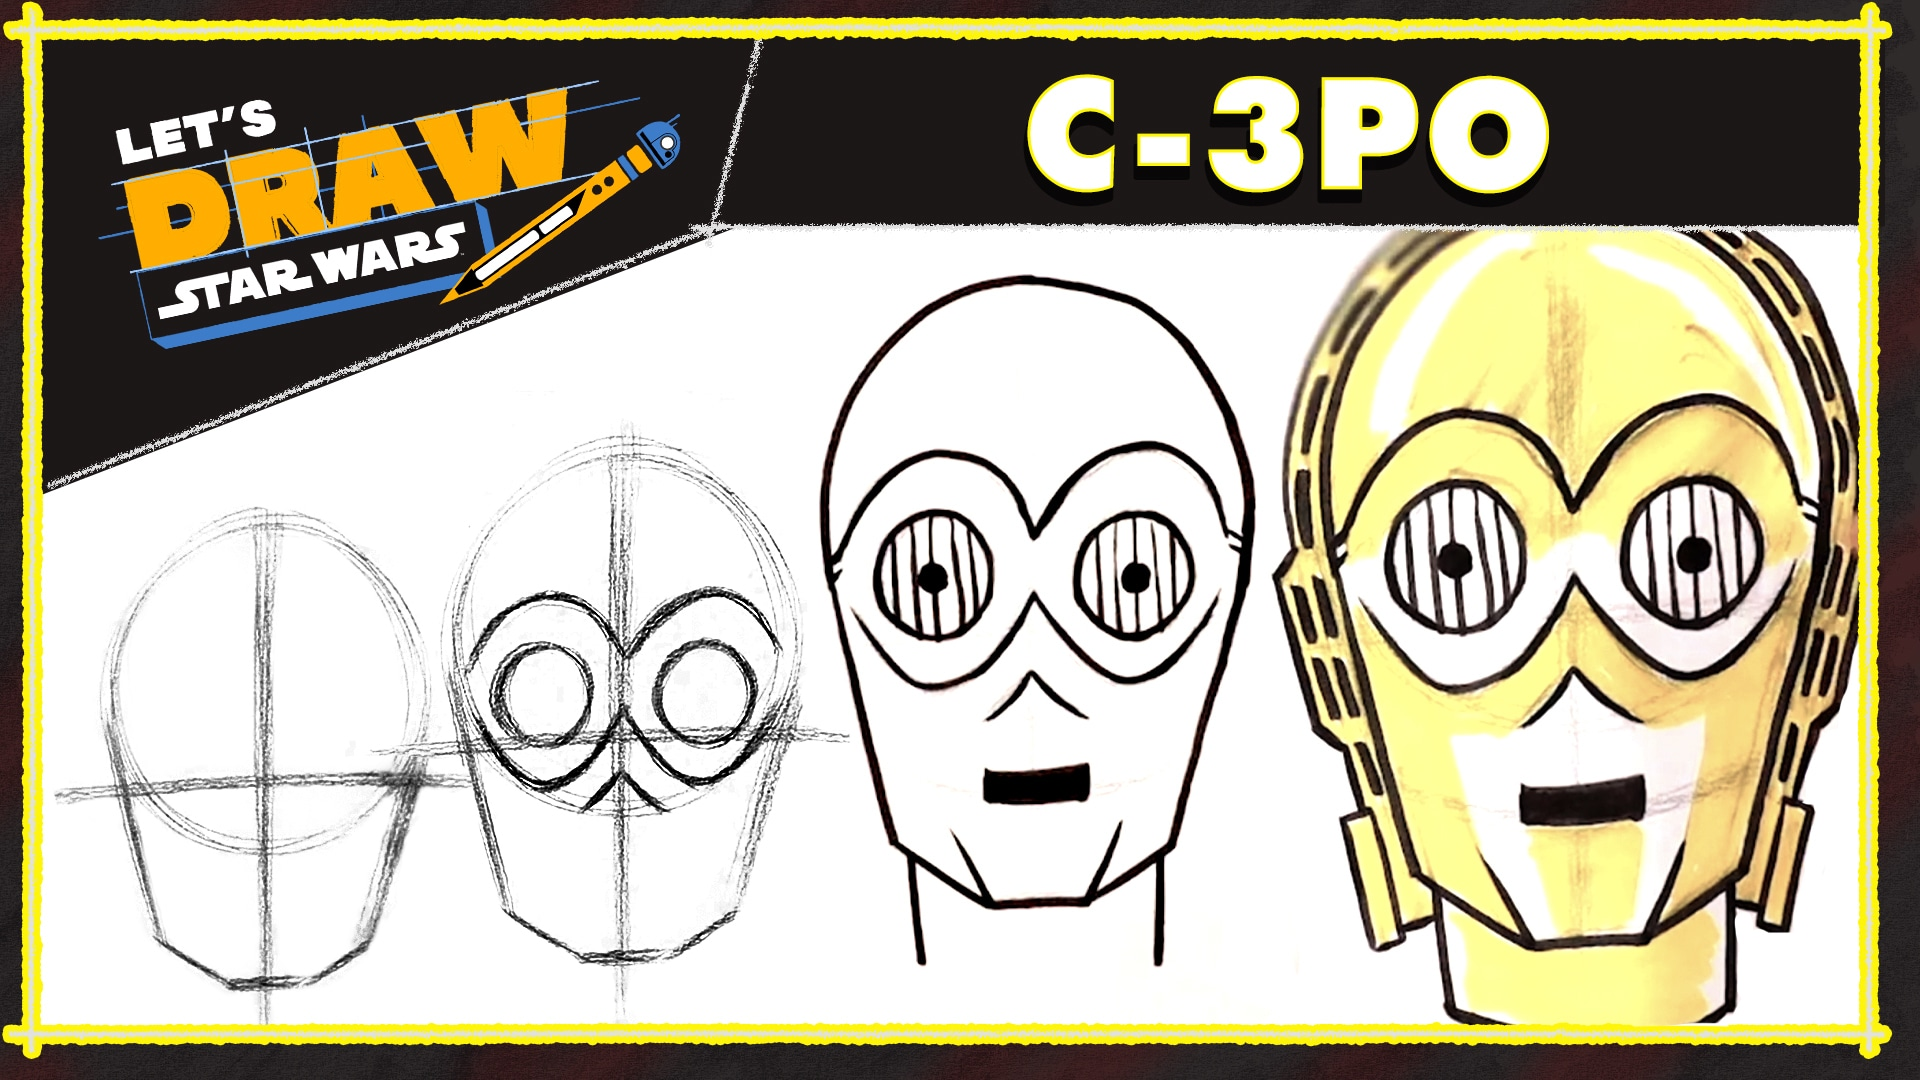 How to Draw C-3PO | Let's Draw Star Wars